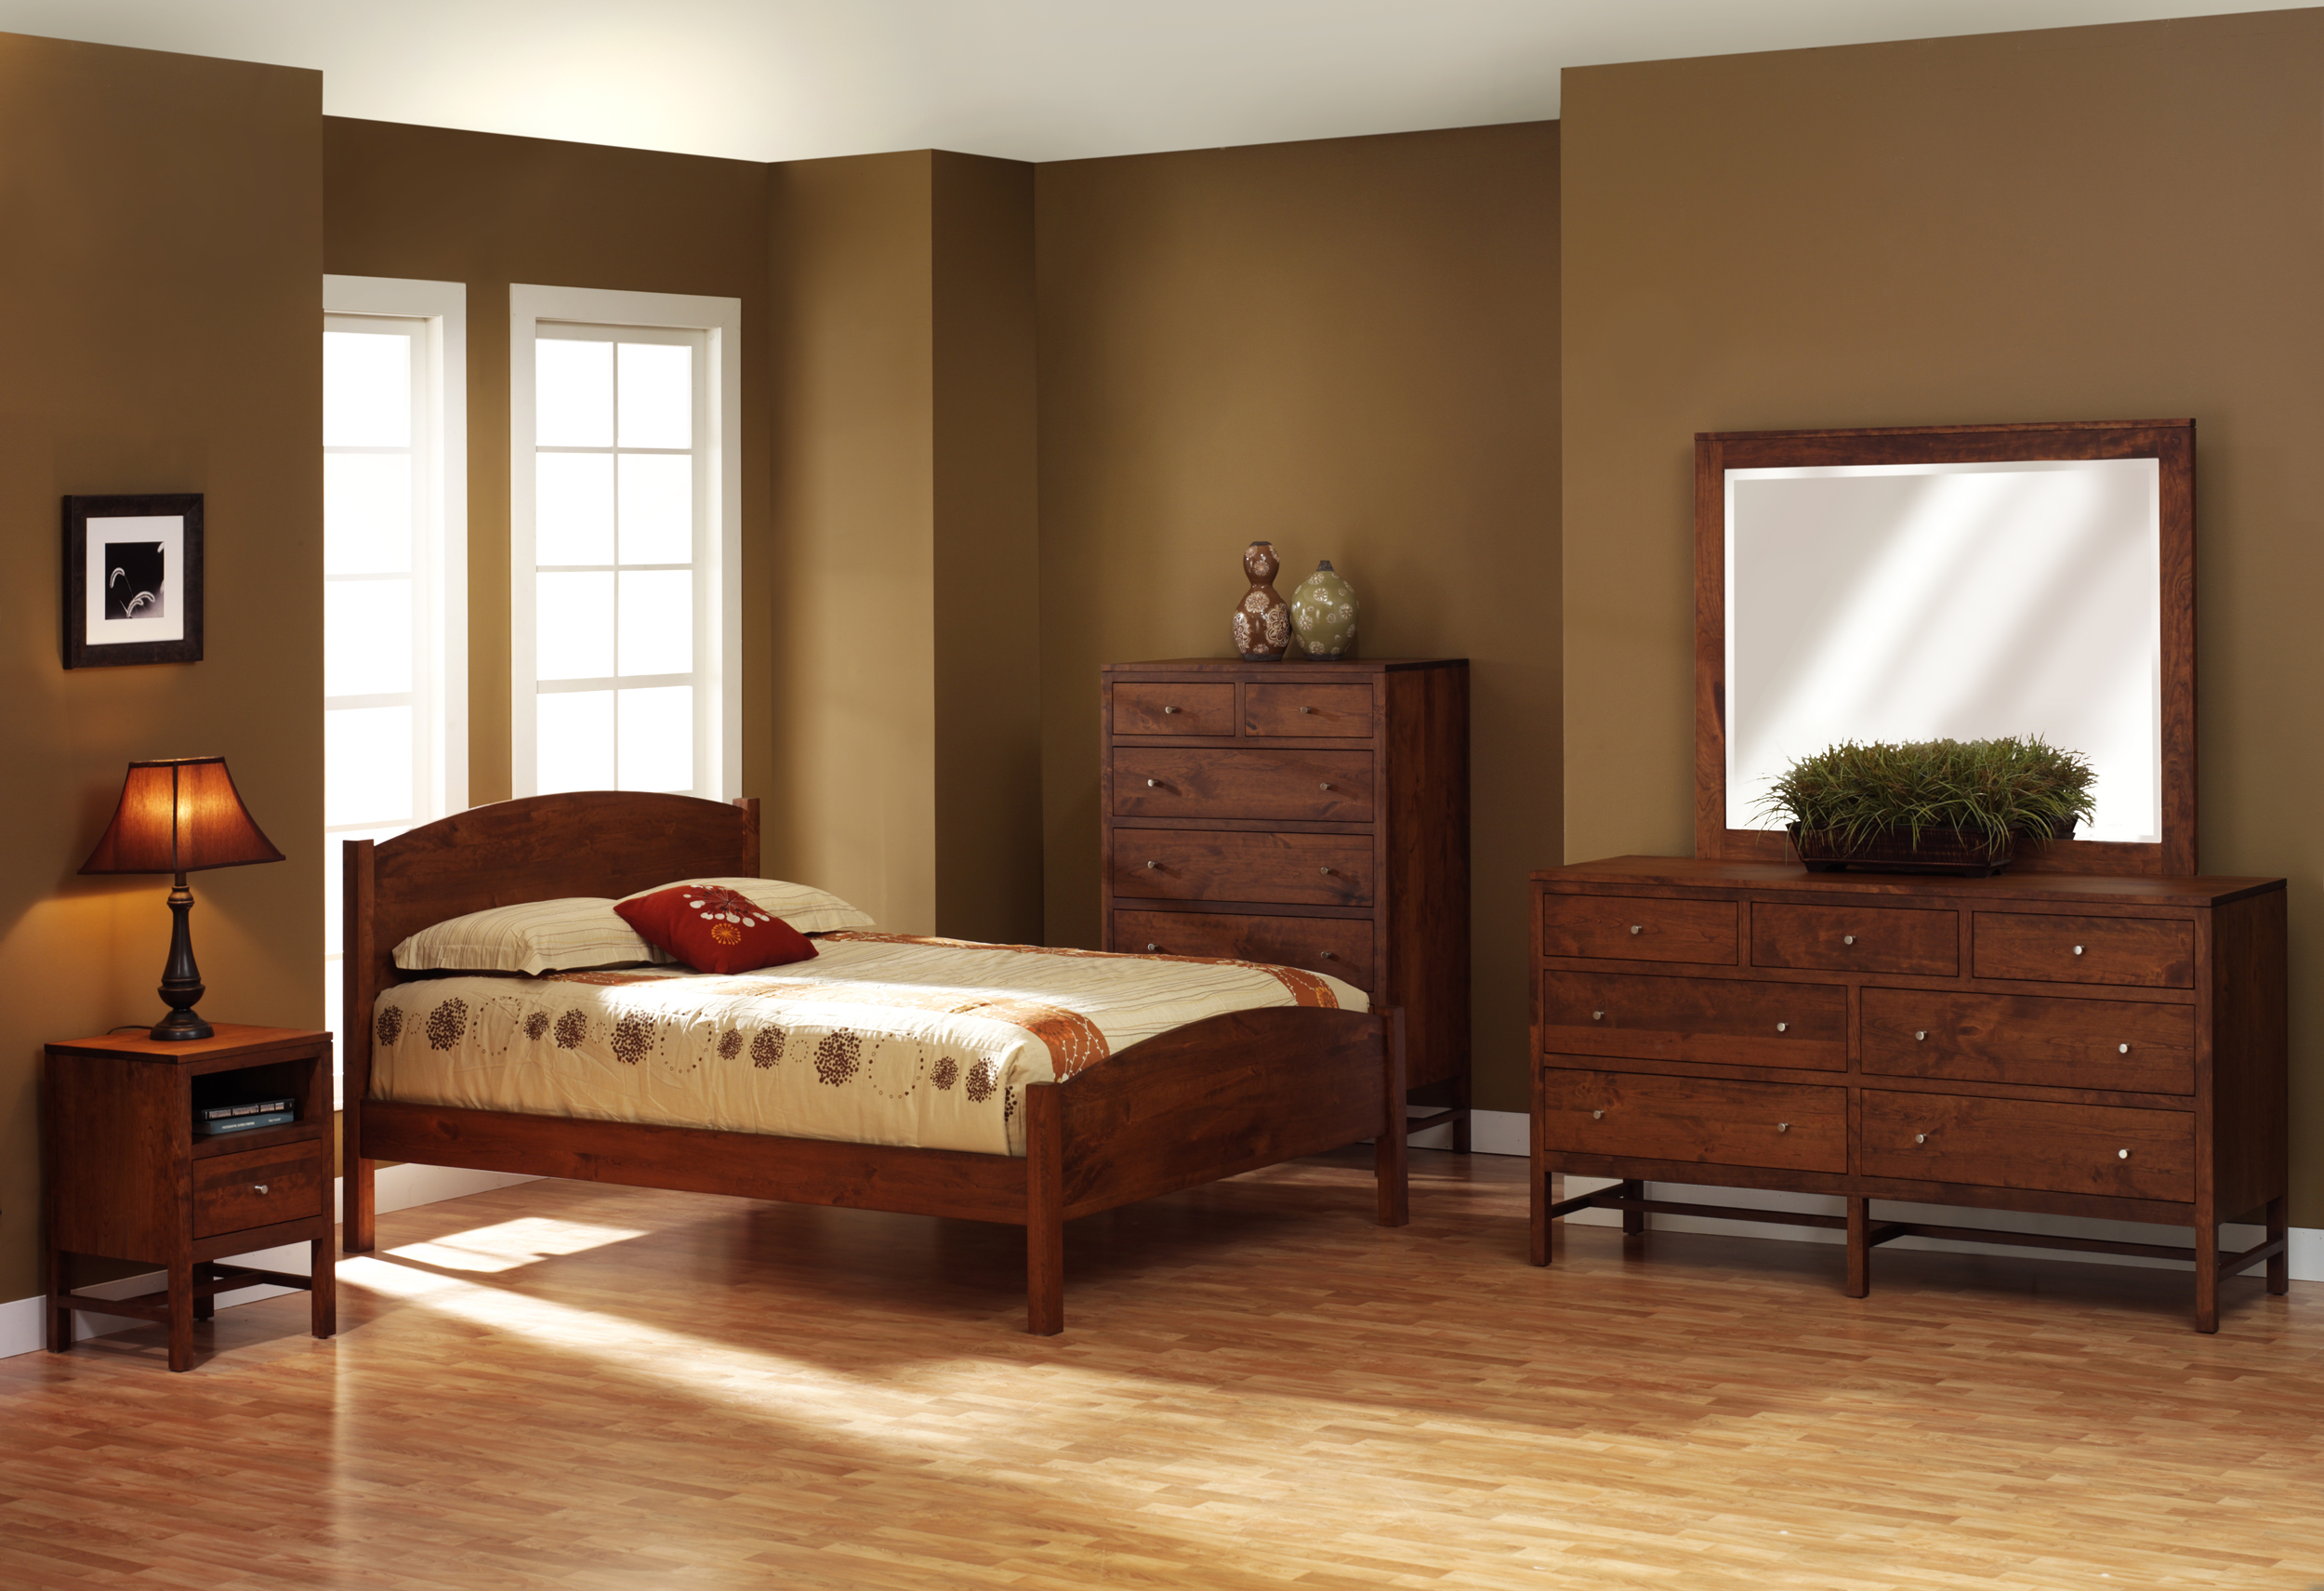 beds pin cherry furniture bedroom amish rustic